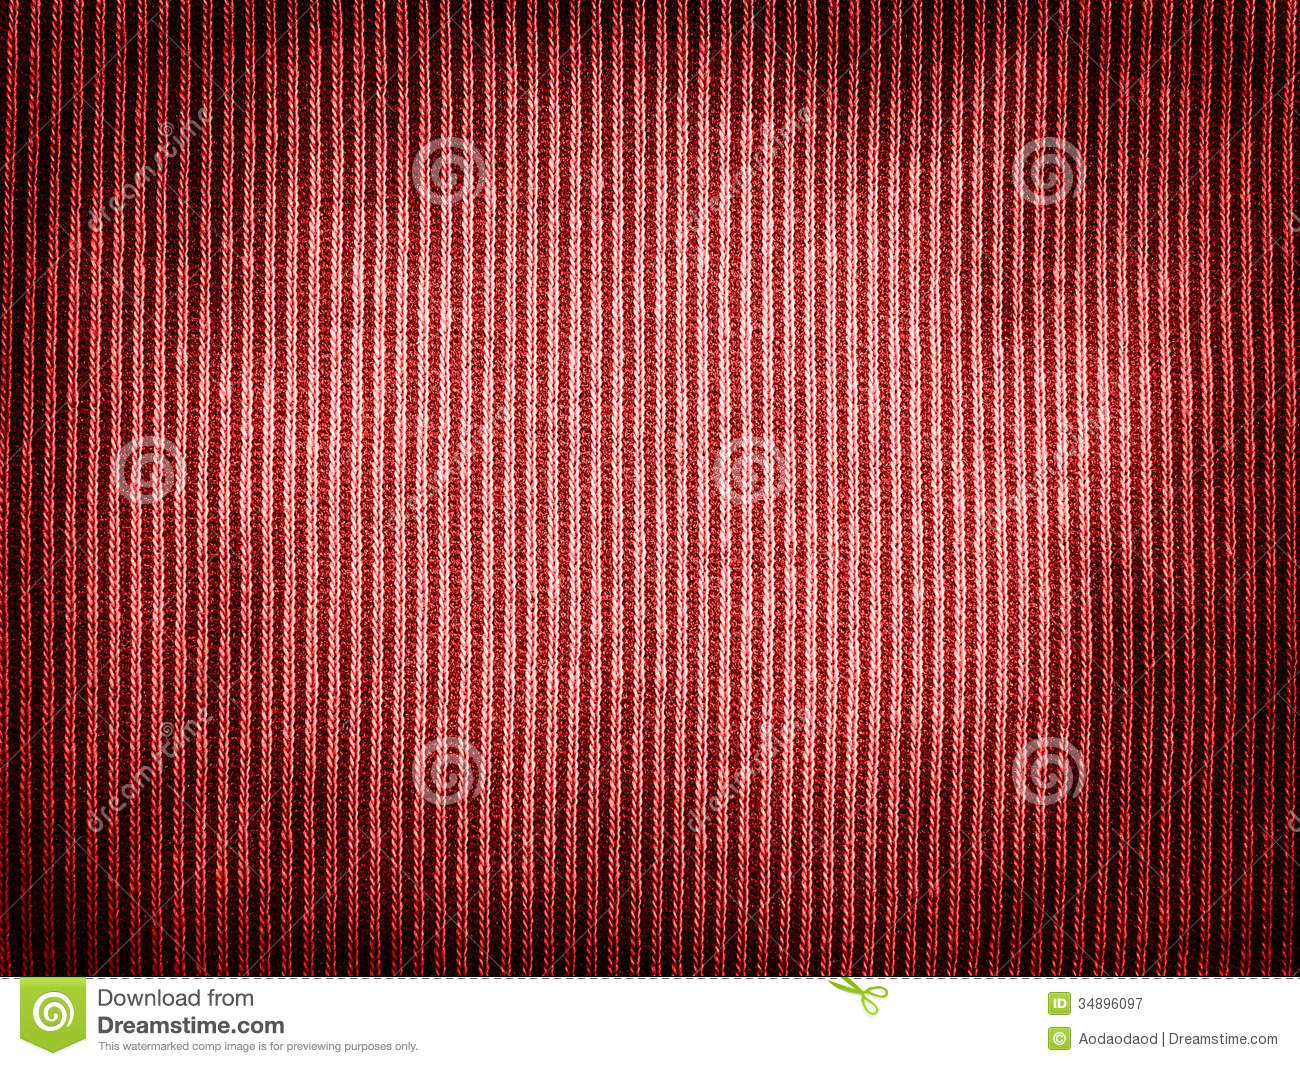 Vintage red fabric texture